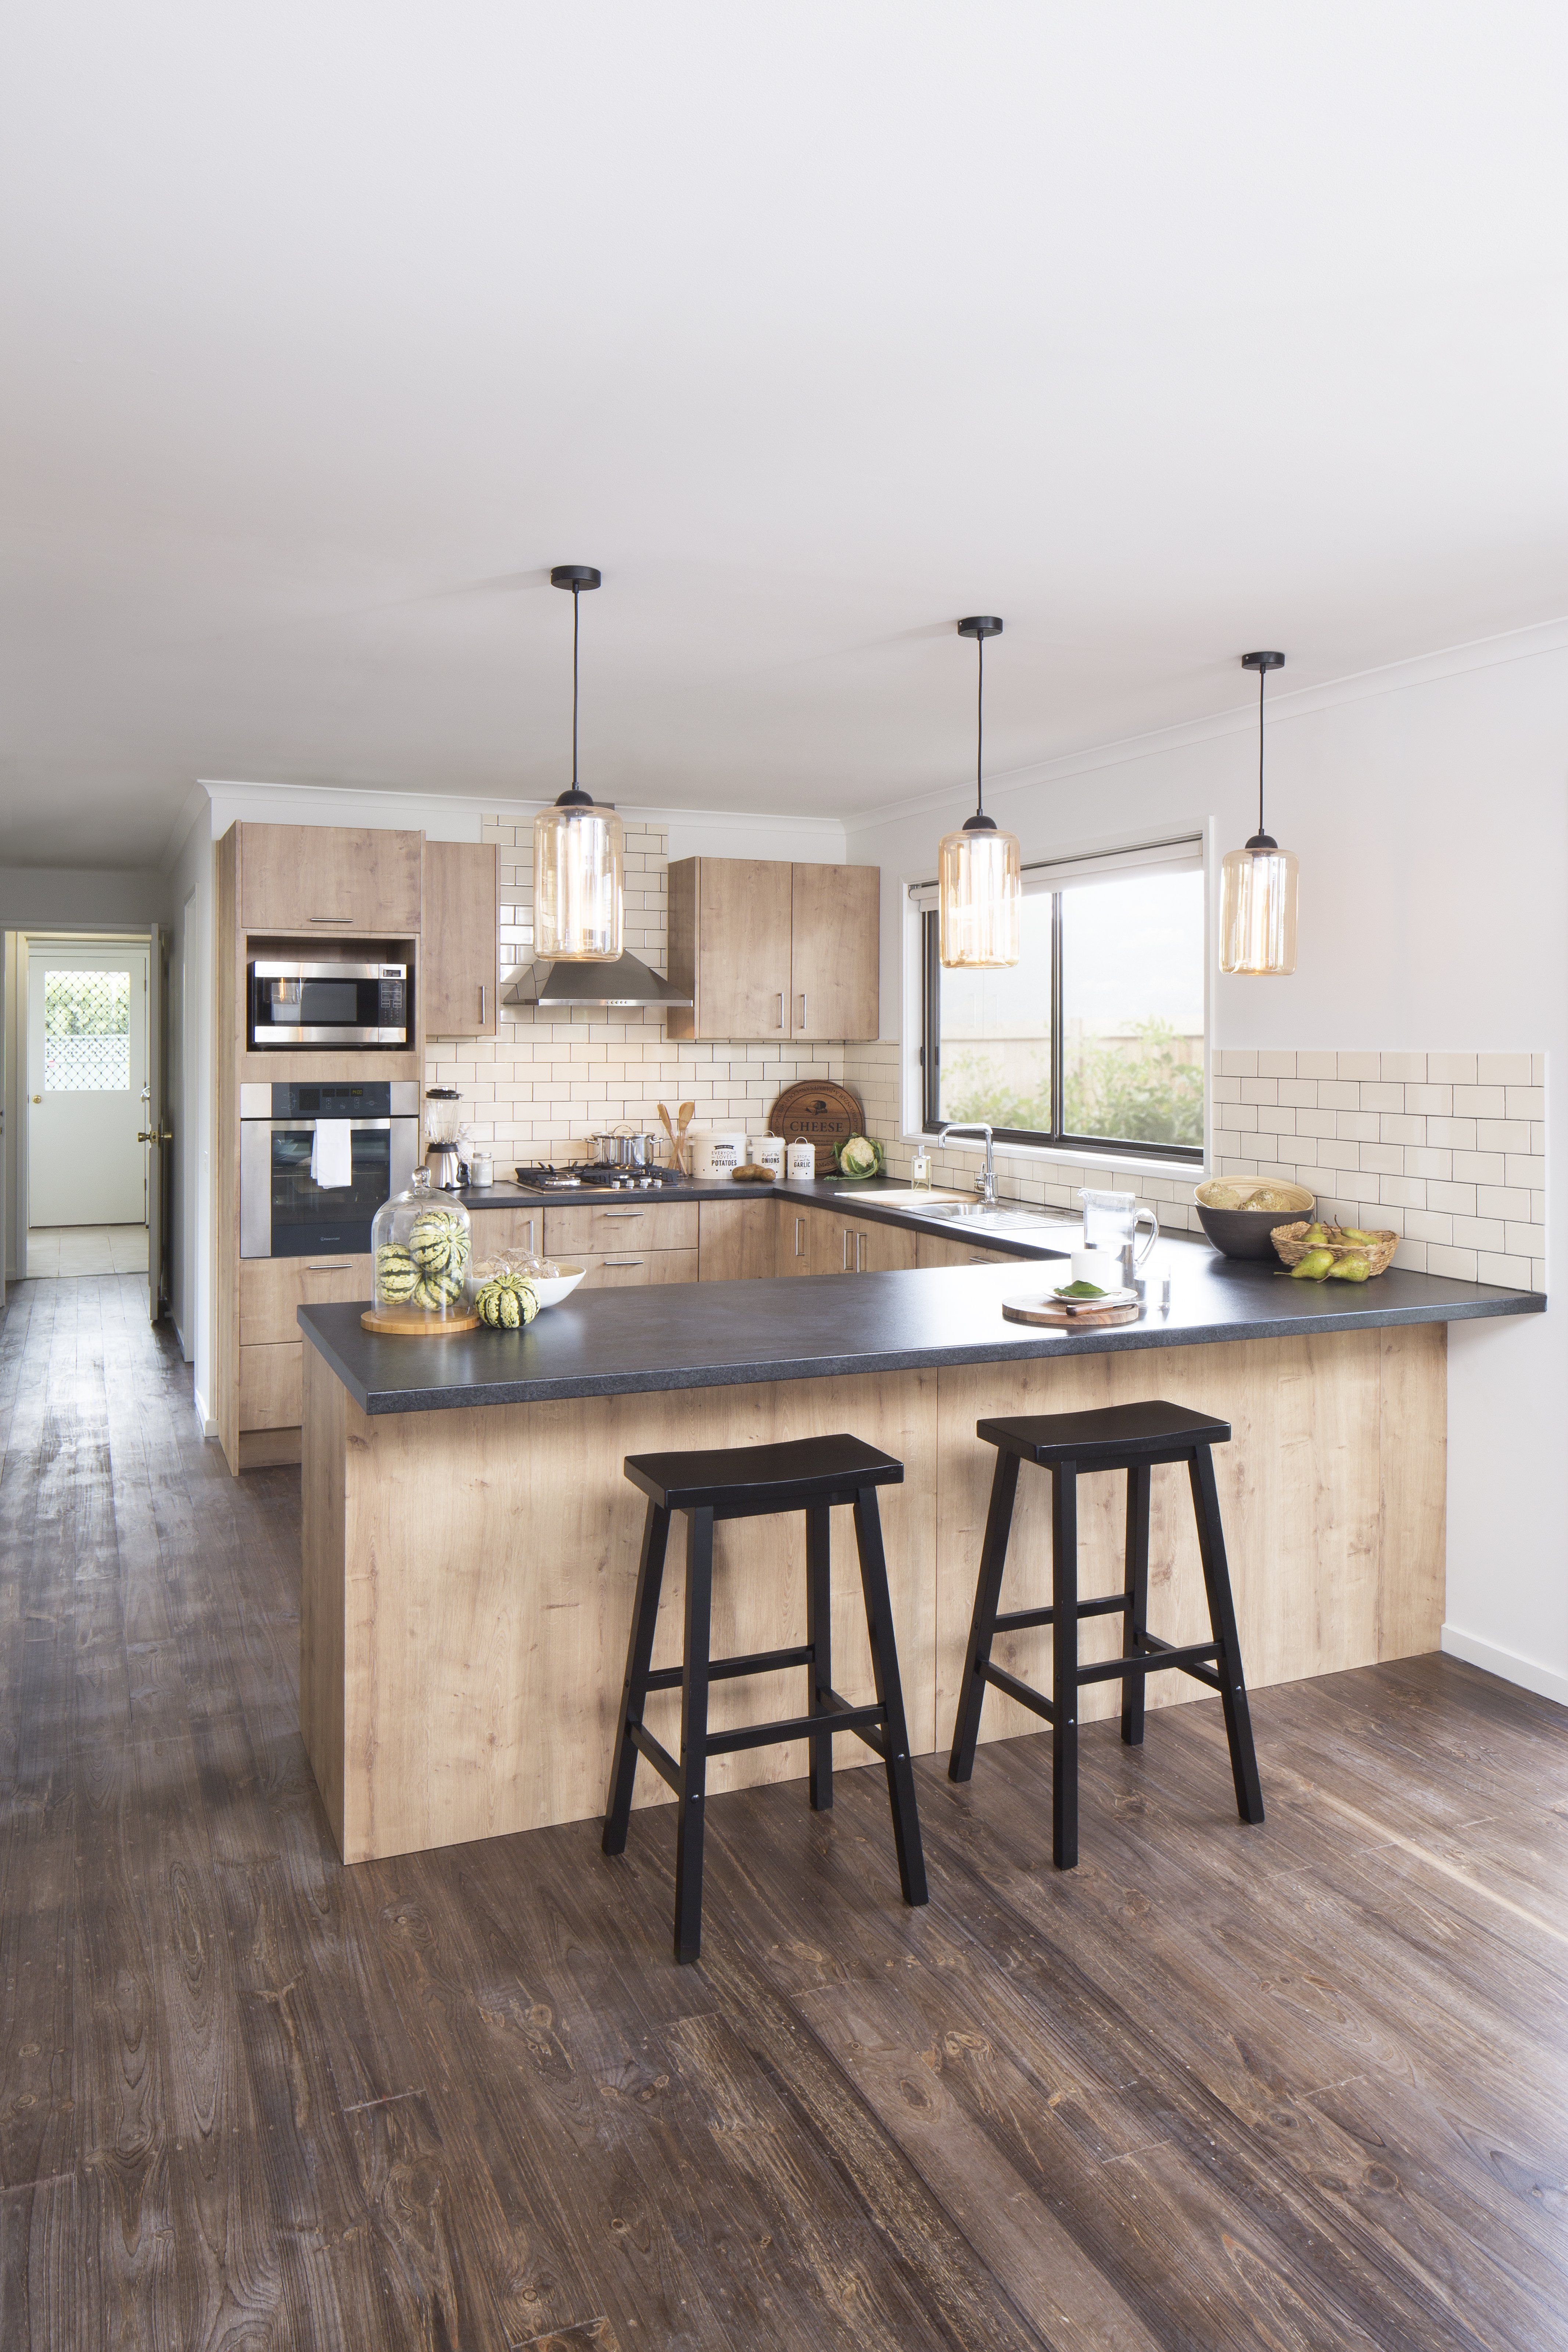 kaboodle bunnings warehouse kitchen cabinets pictures laminate kitchen laminate kitchen on kaboodle kitchen microwave id=56612